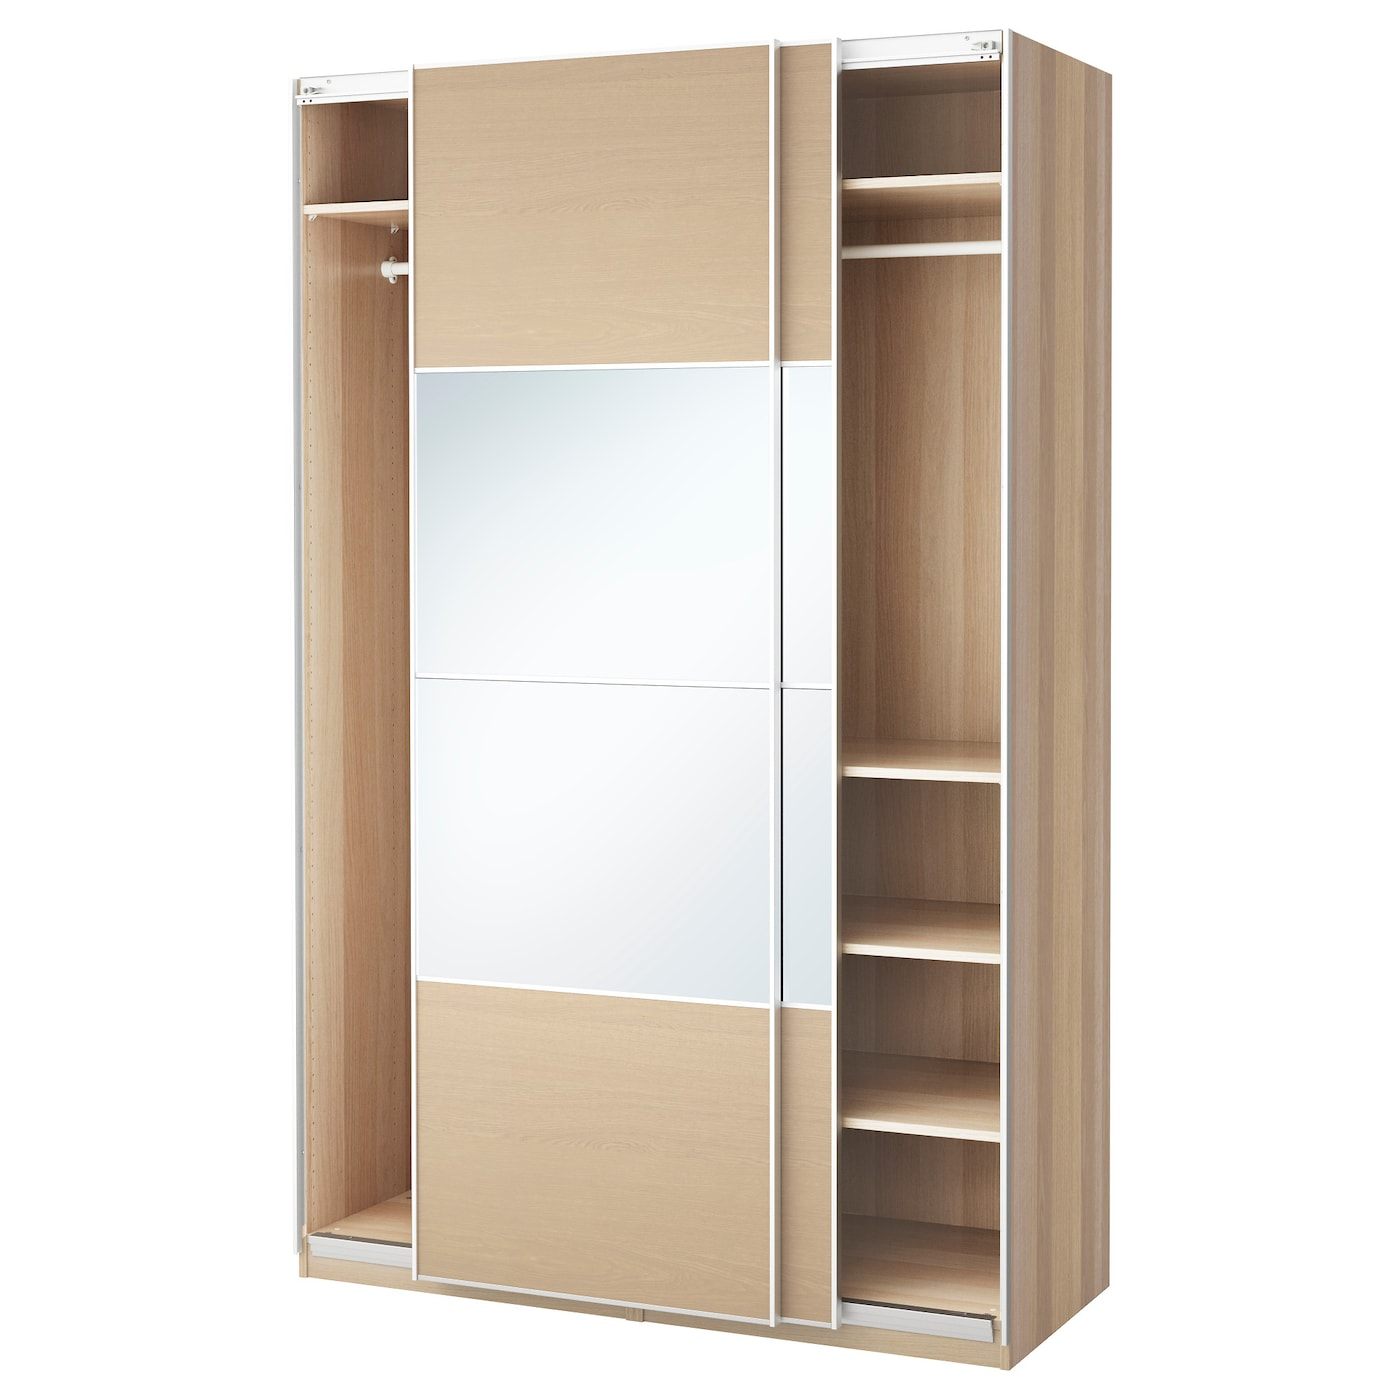 PAX Wardrobe White stained oak effect auli ilseng 150x66x236 cm  IKEA